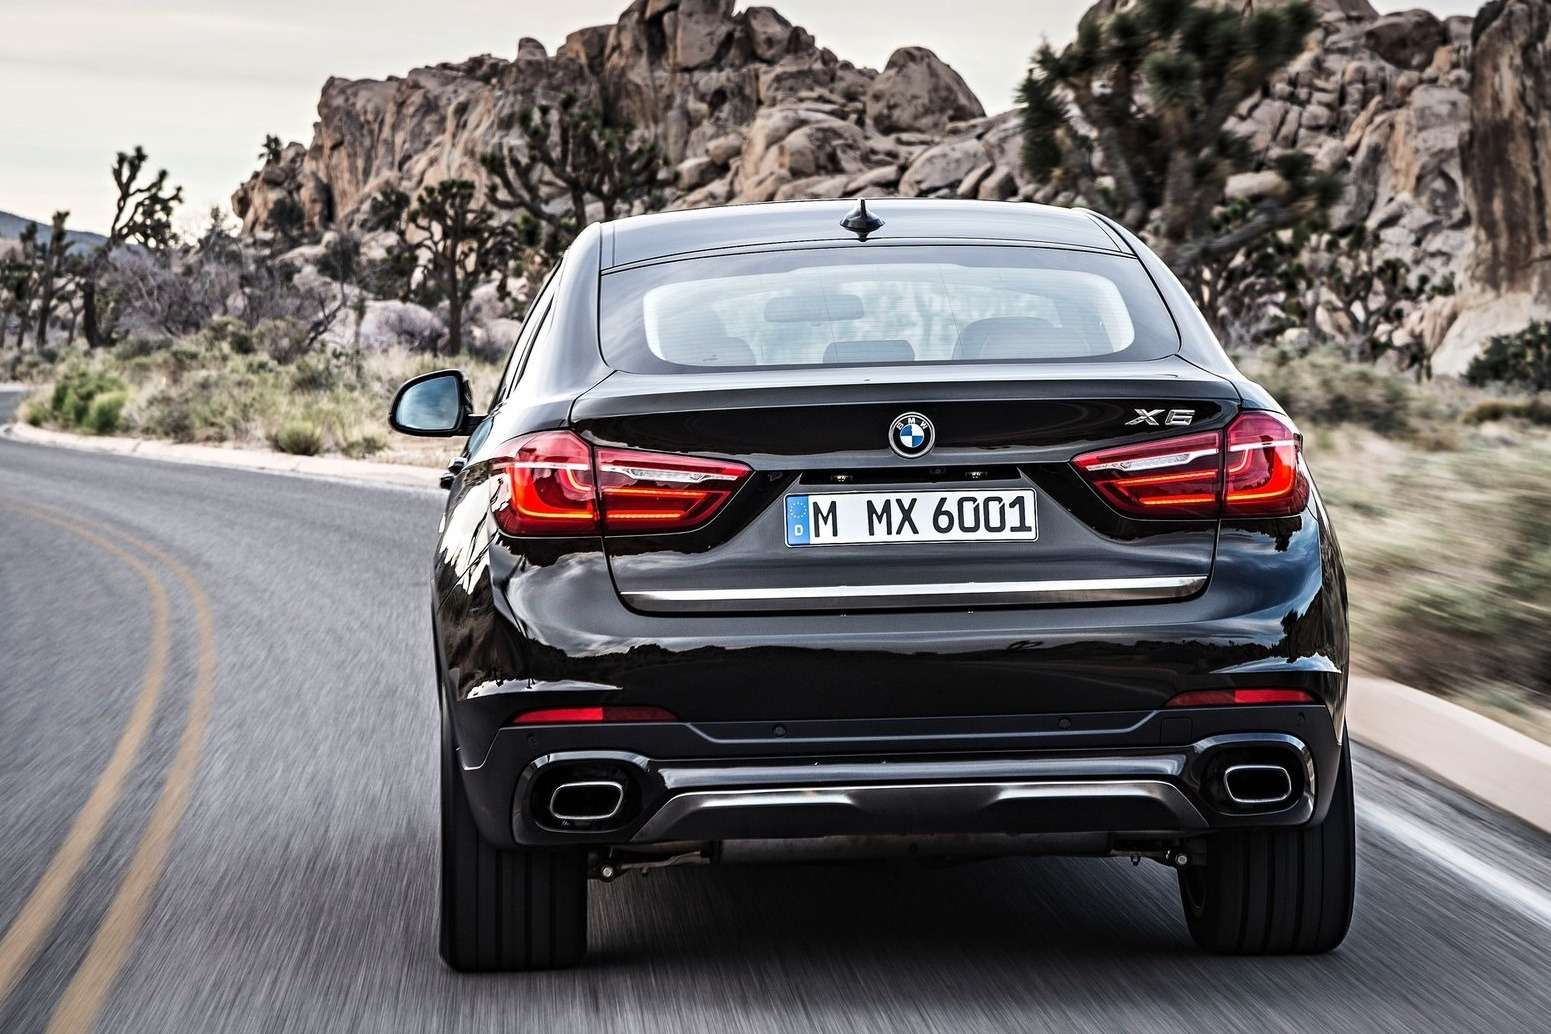 BMW-X6_2015_1600x1200_wallpaper_2f